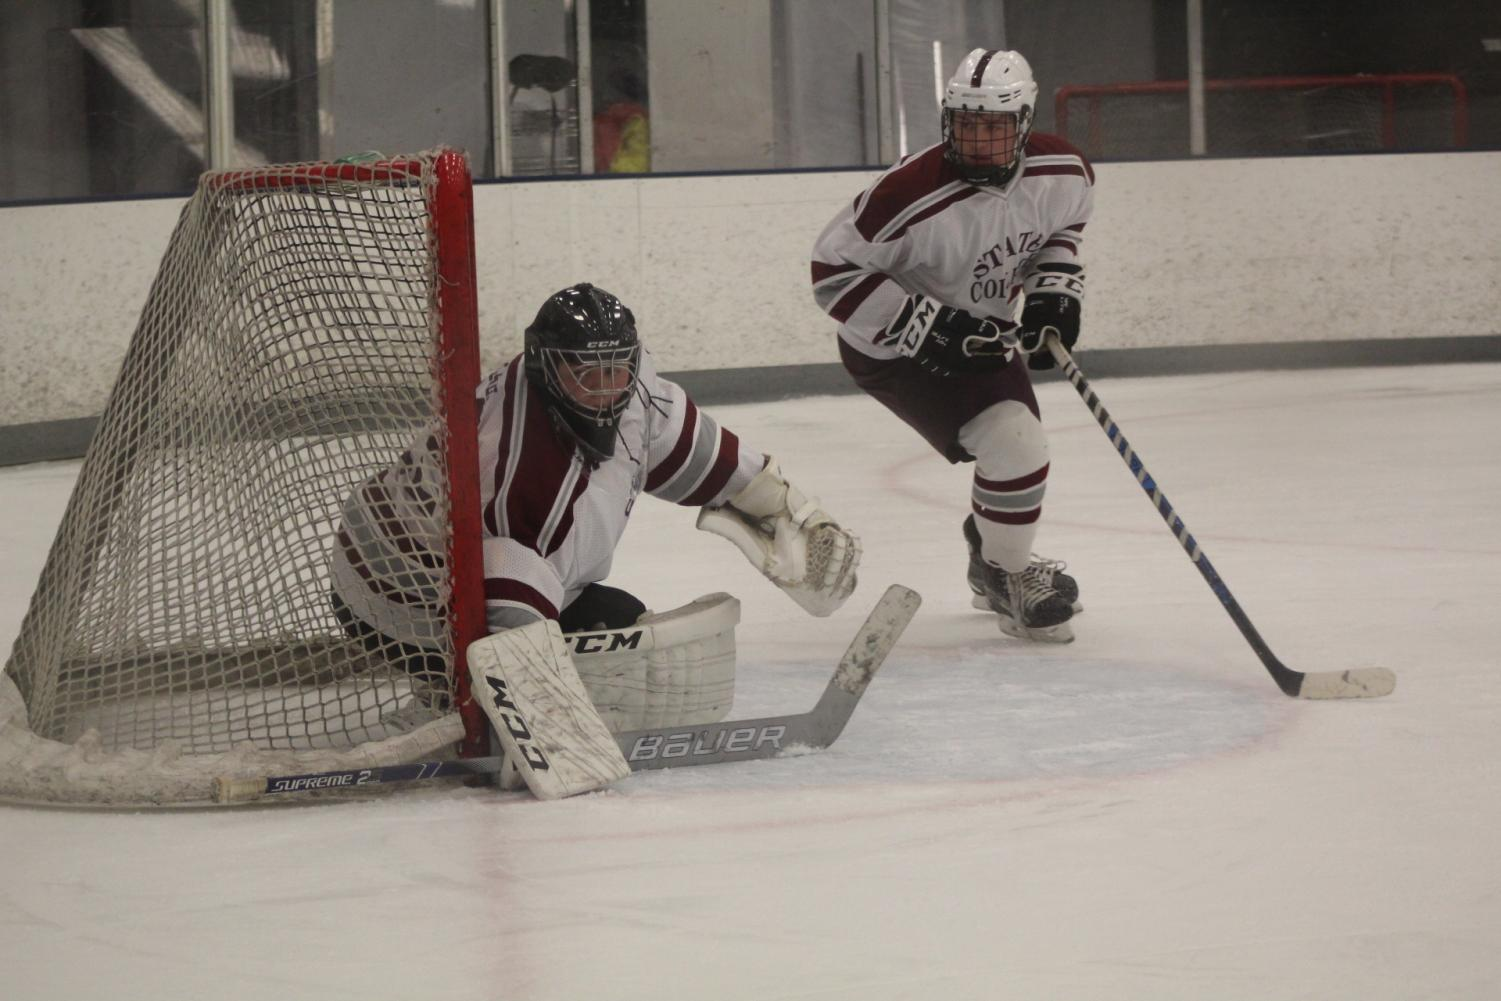 Brothers, sophomore John Olsen (left) and senior Wesley Olsen (right), watch the puck during the State College varsity hockey game against Central Cambria.